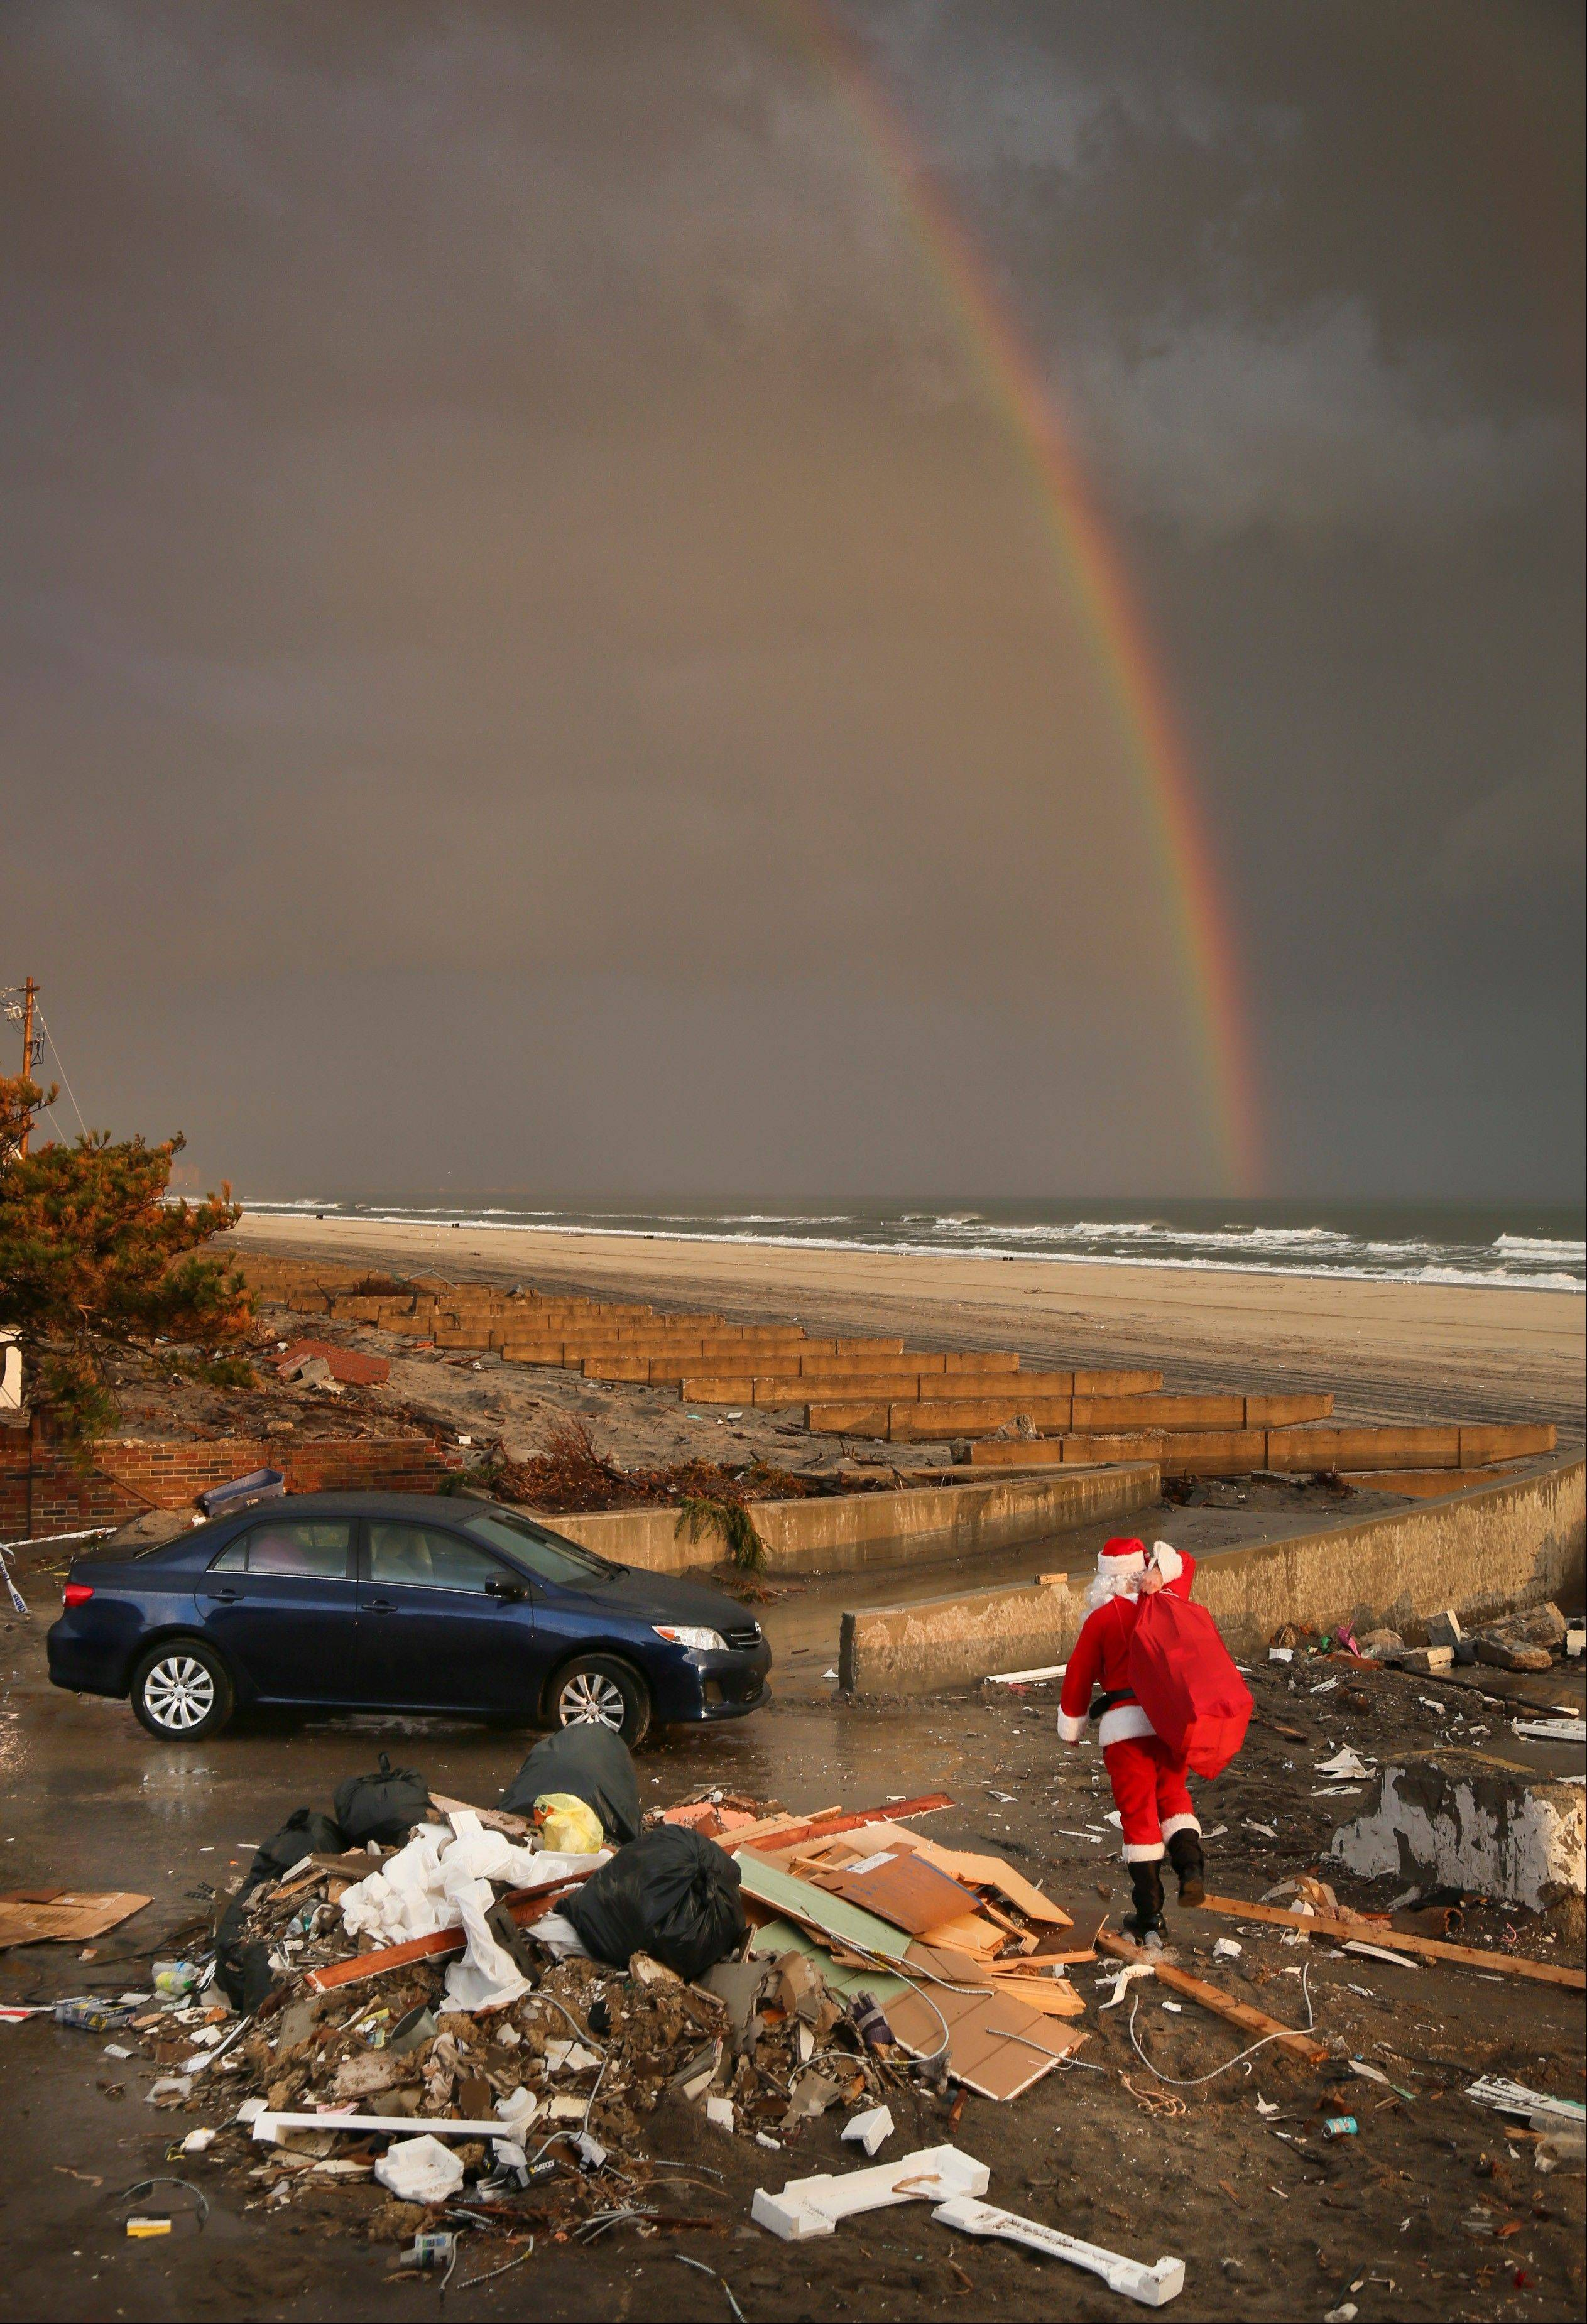 A rainbow appears as a Santa-dressed Michael Sciaraffo leaves the home of Ella Sampol, 14 months, after bringing her a toy in the Belle Harbor neighborhood of the Queens borough of New York. Using Facebook, Sciaraffo started a charitable enterprise to collect and personally deliver toys to children affected by Superstorm Sandy, dressed as Santa Claus.